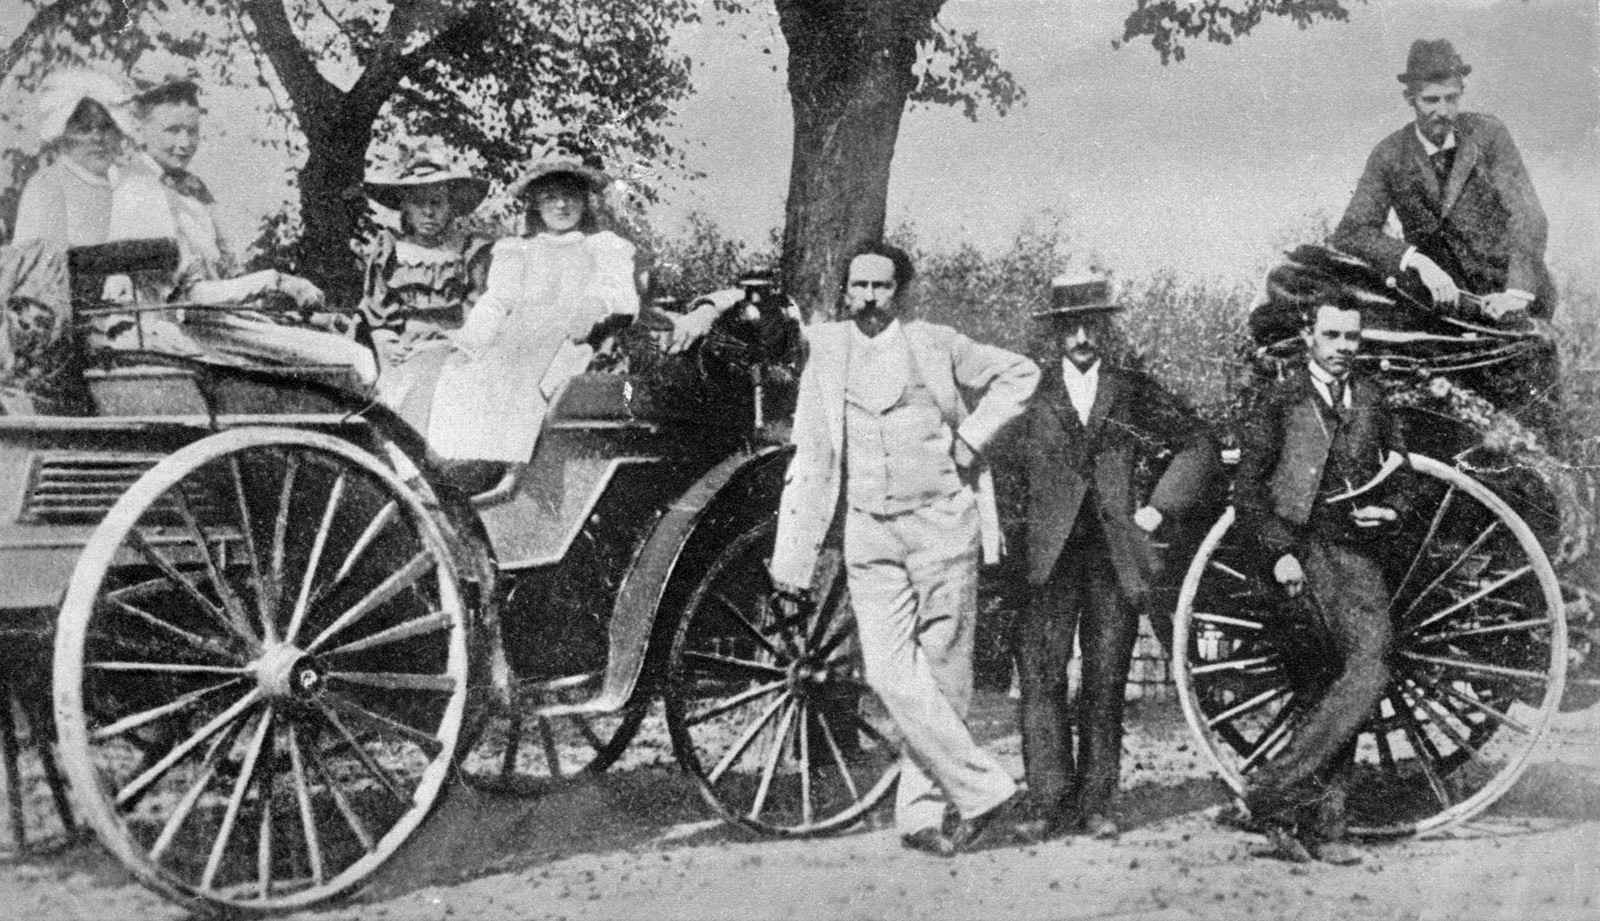 Karl Benz family outing friends one automobiles 1894